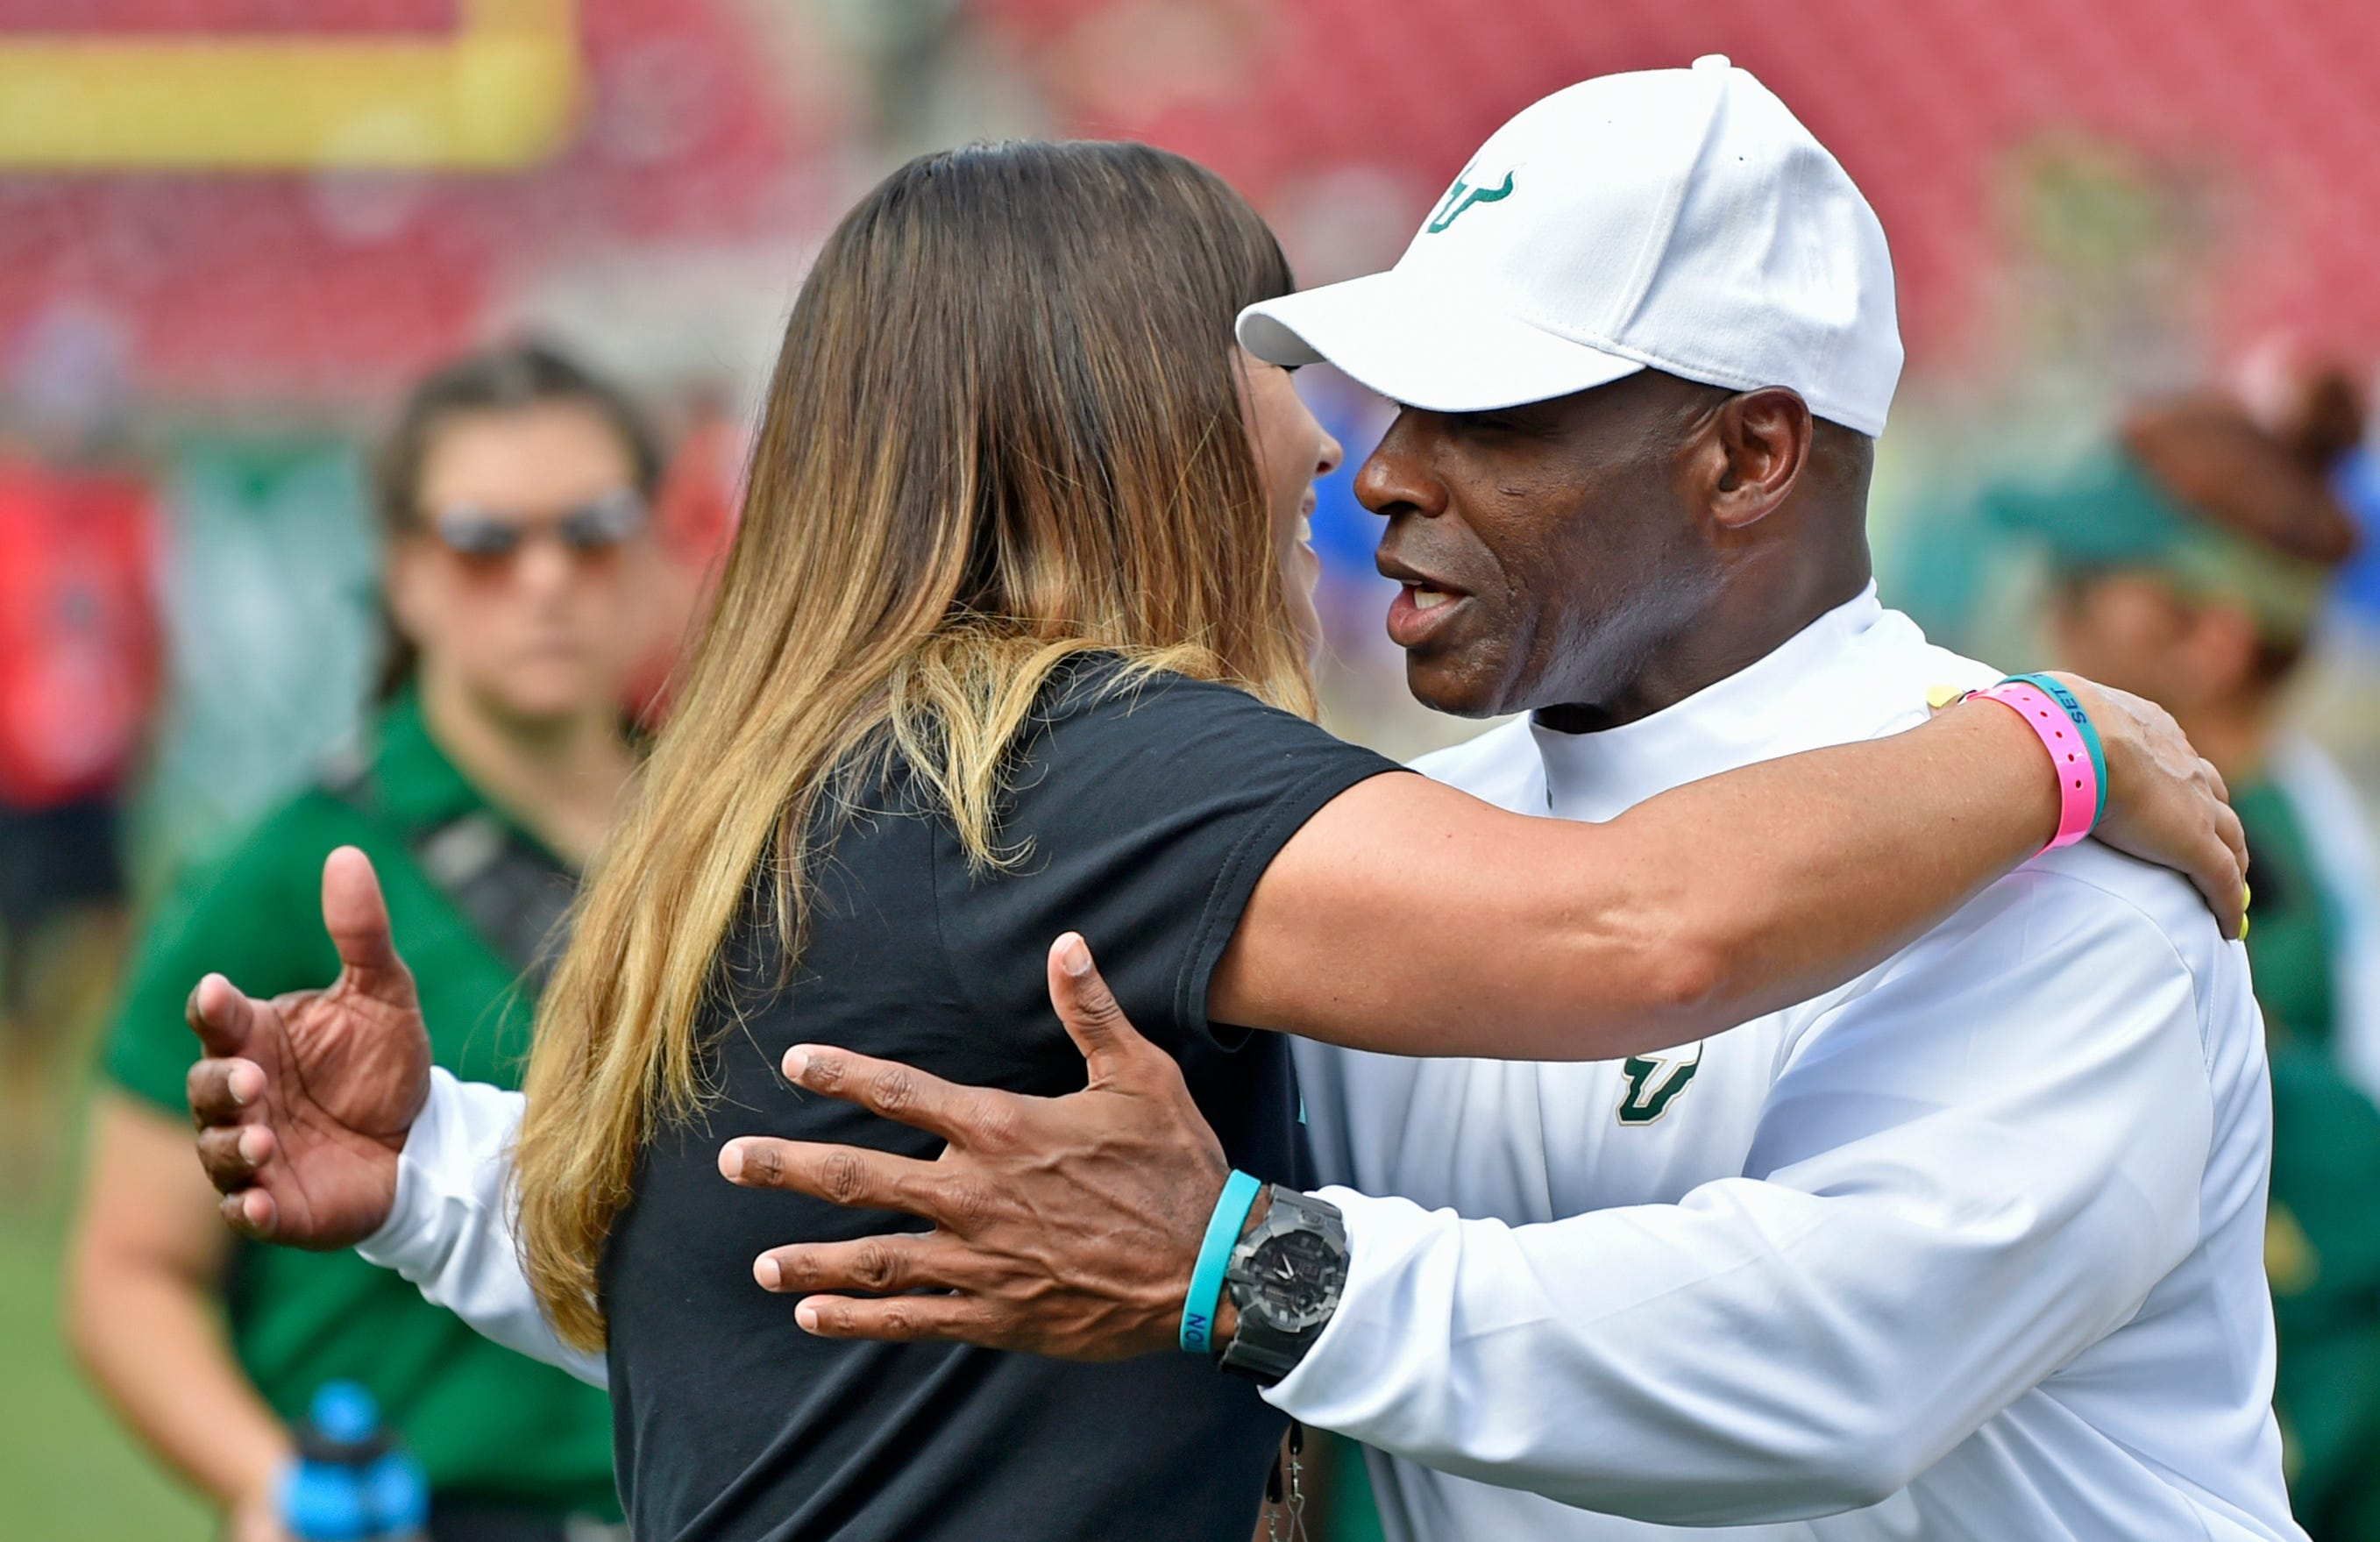 Brenda Tracy gives a pre-game hug to University of South Florida head coach football Charlie Strong on Sept. 28, 2019, in Tampa, Florida.